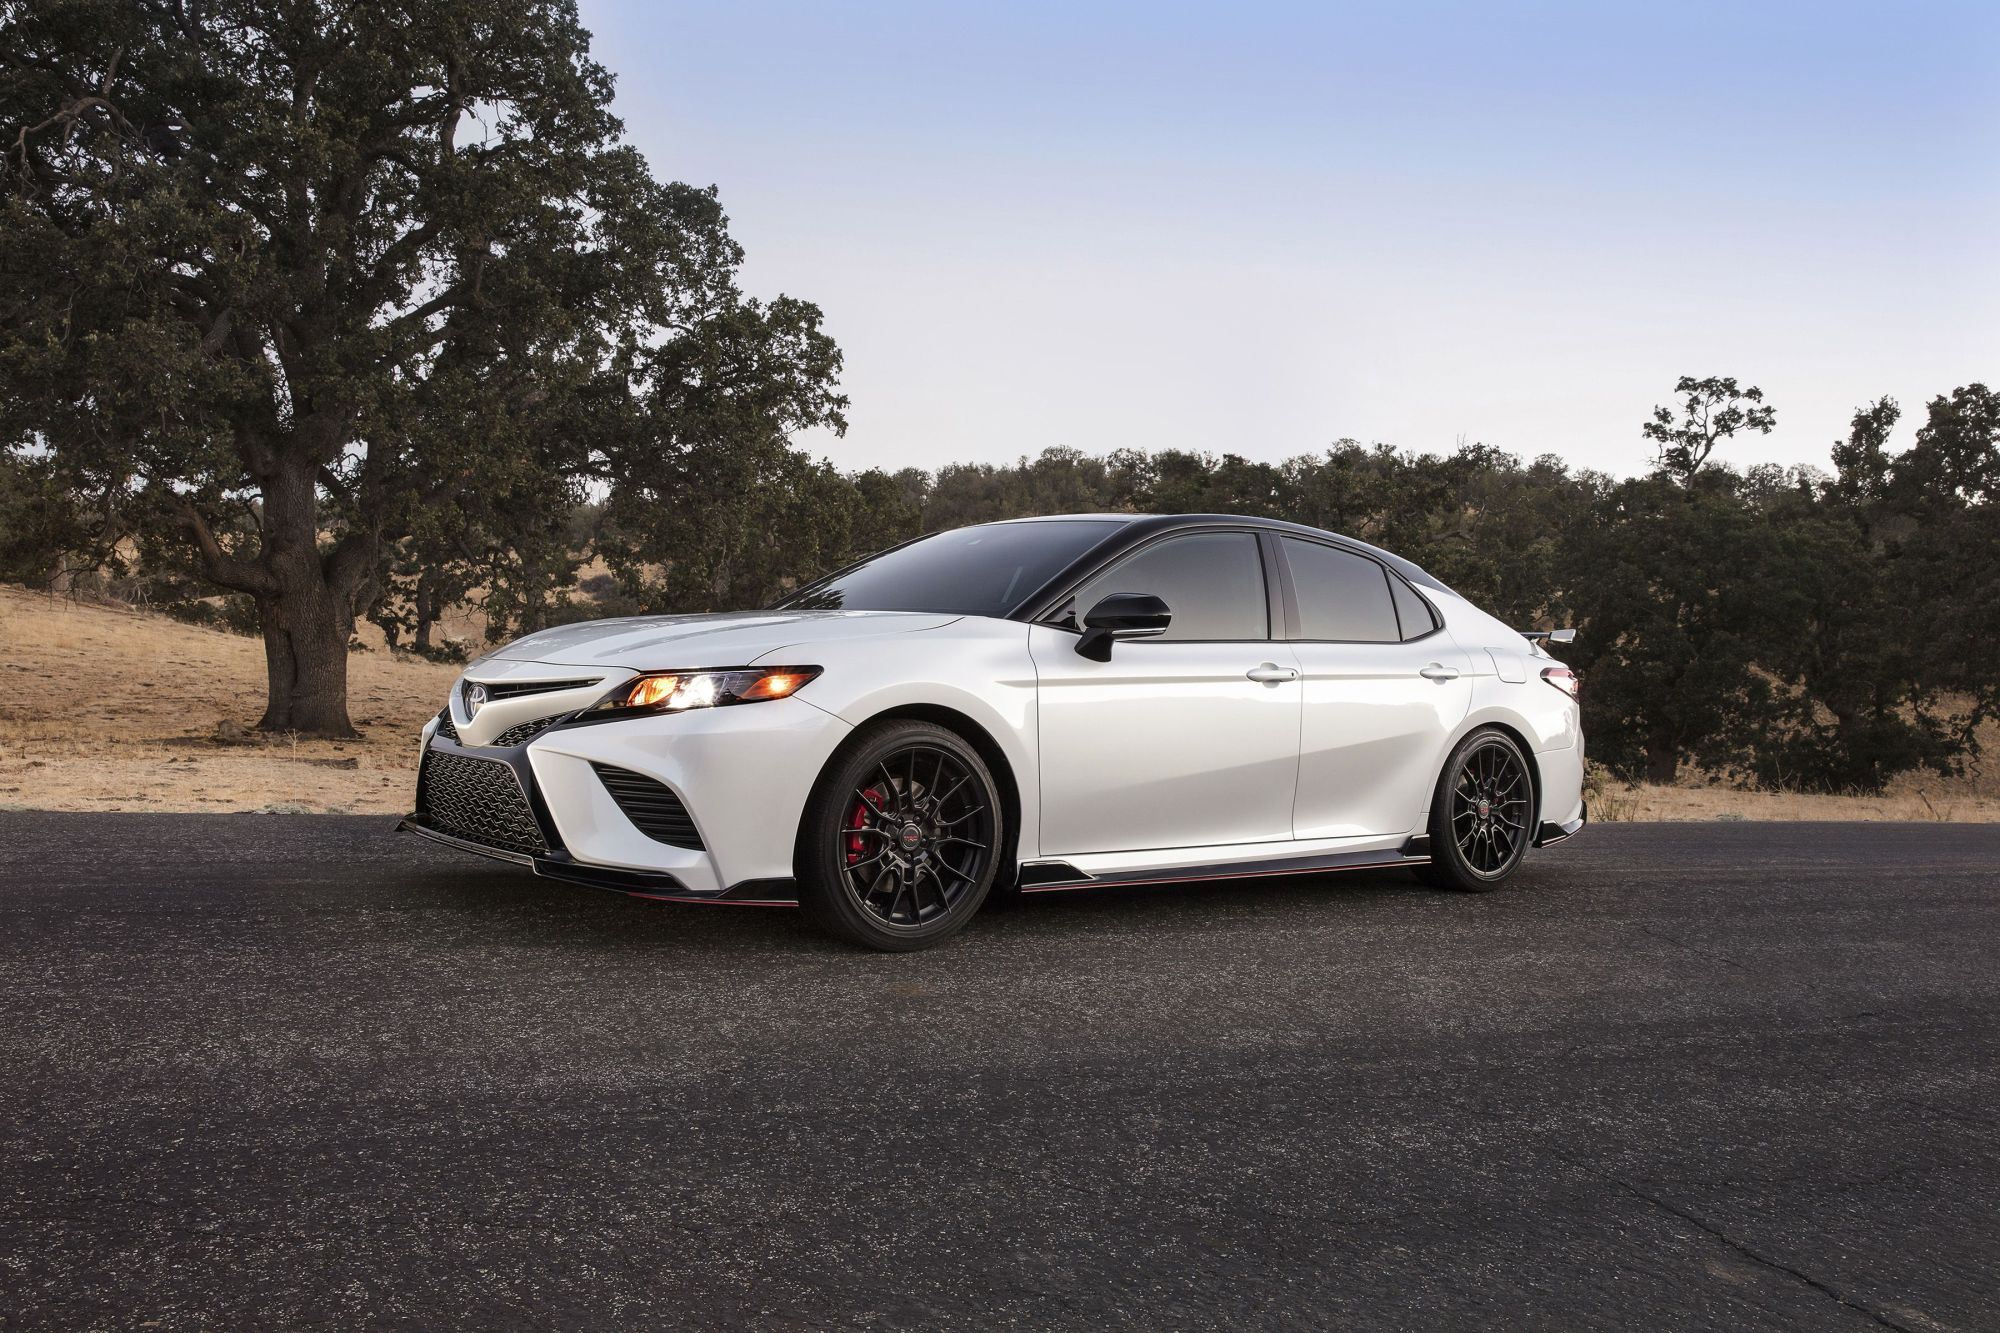 hight resolution of the 2020 toyota camry trd has red seatbelts and the chassis mods to back them up don t laugh it s a sporty camry trim level that toyota claims is track